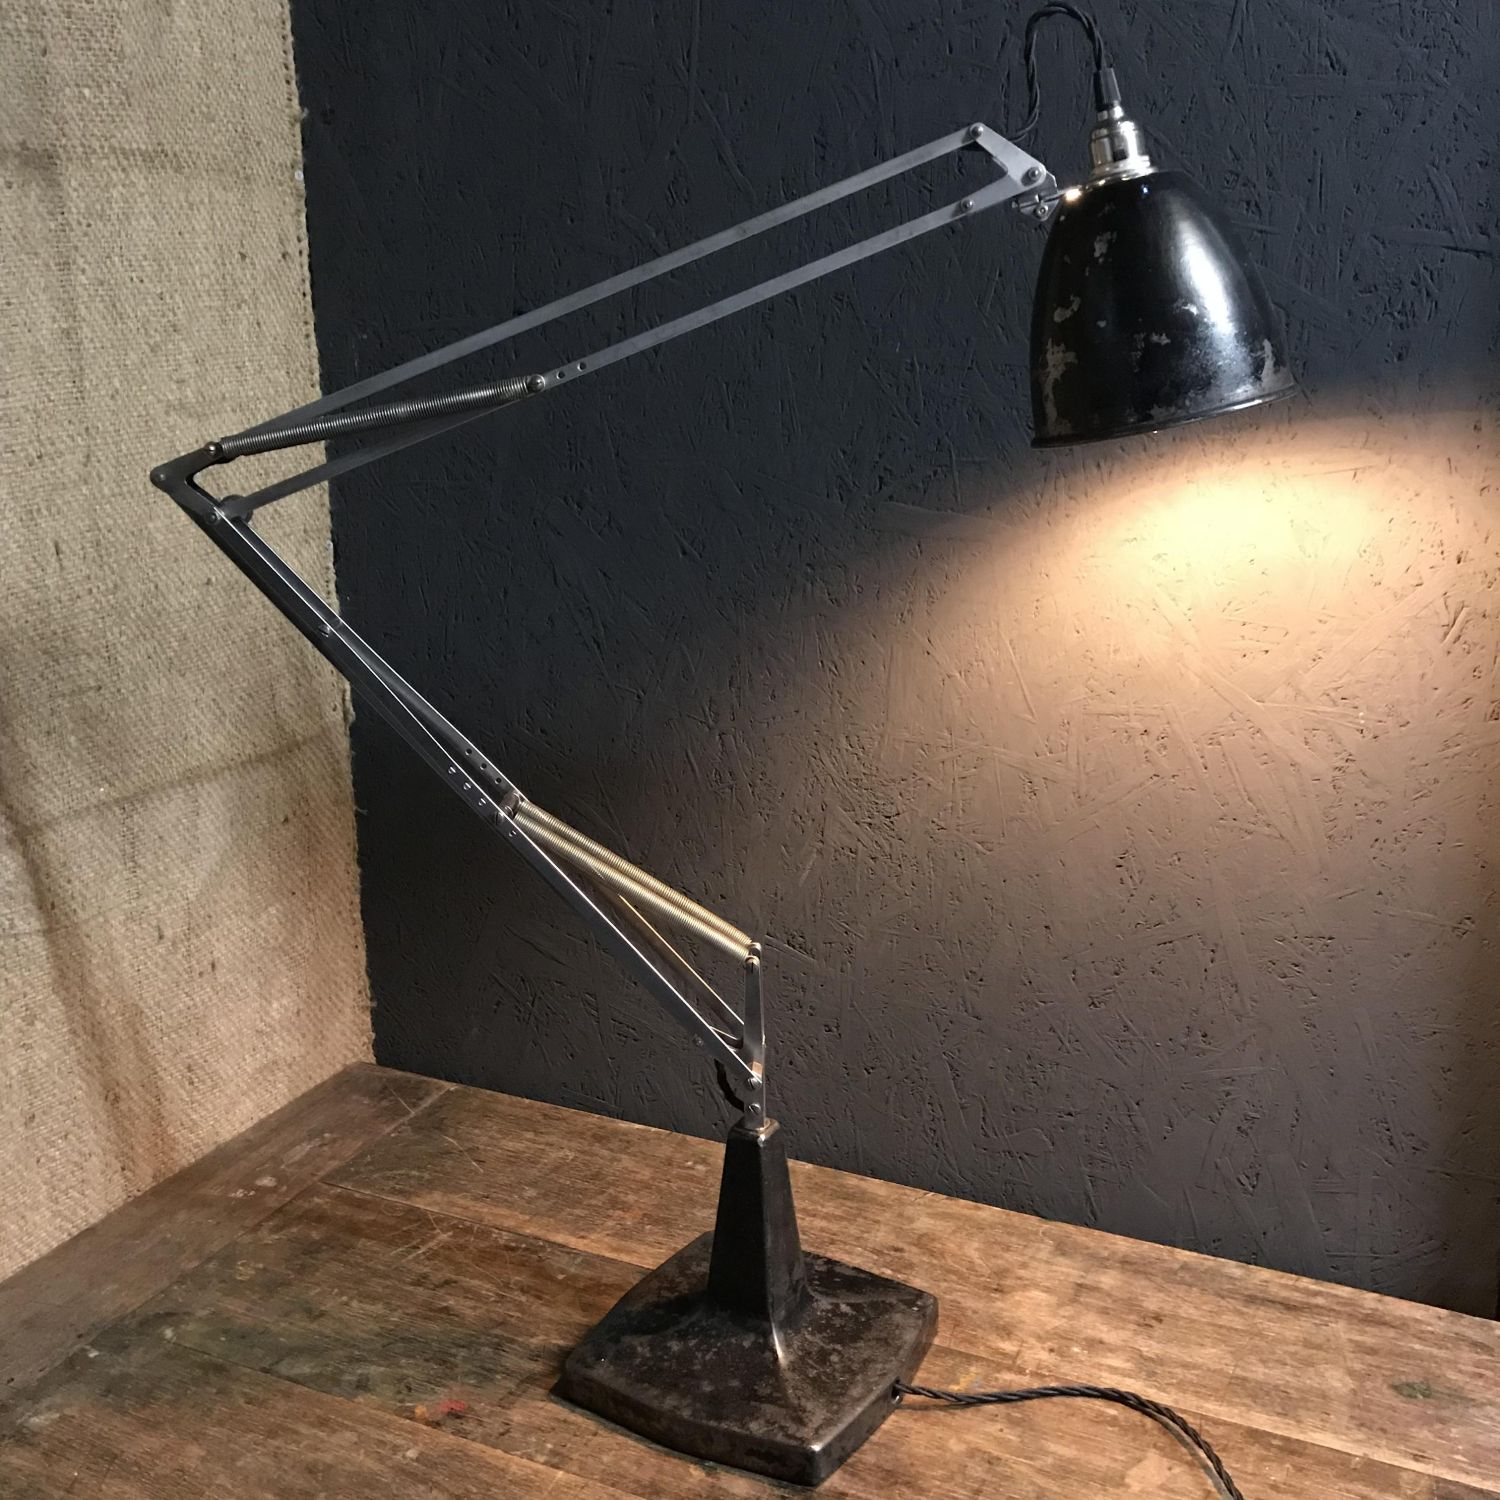 Herbert terry 1208 prototype anglepoise lamp antique lighting herbert terry 1208 prototype anglepoise lamp mozeypictures Choice Image